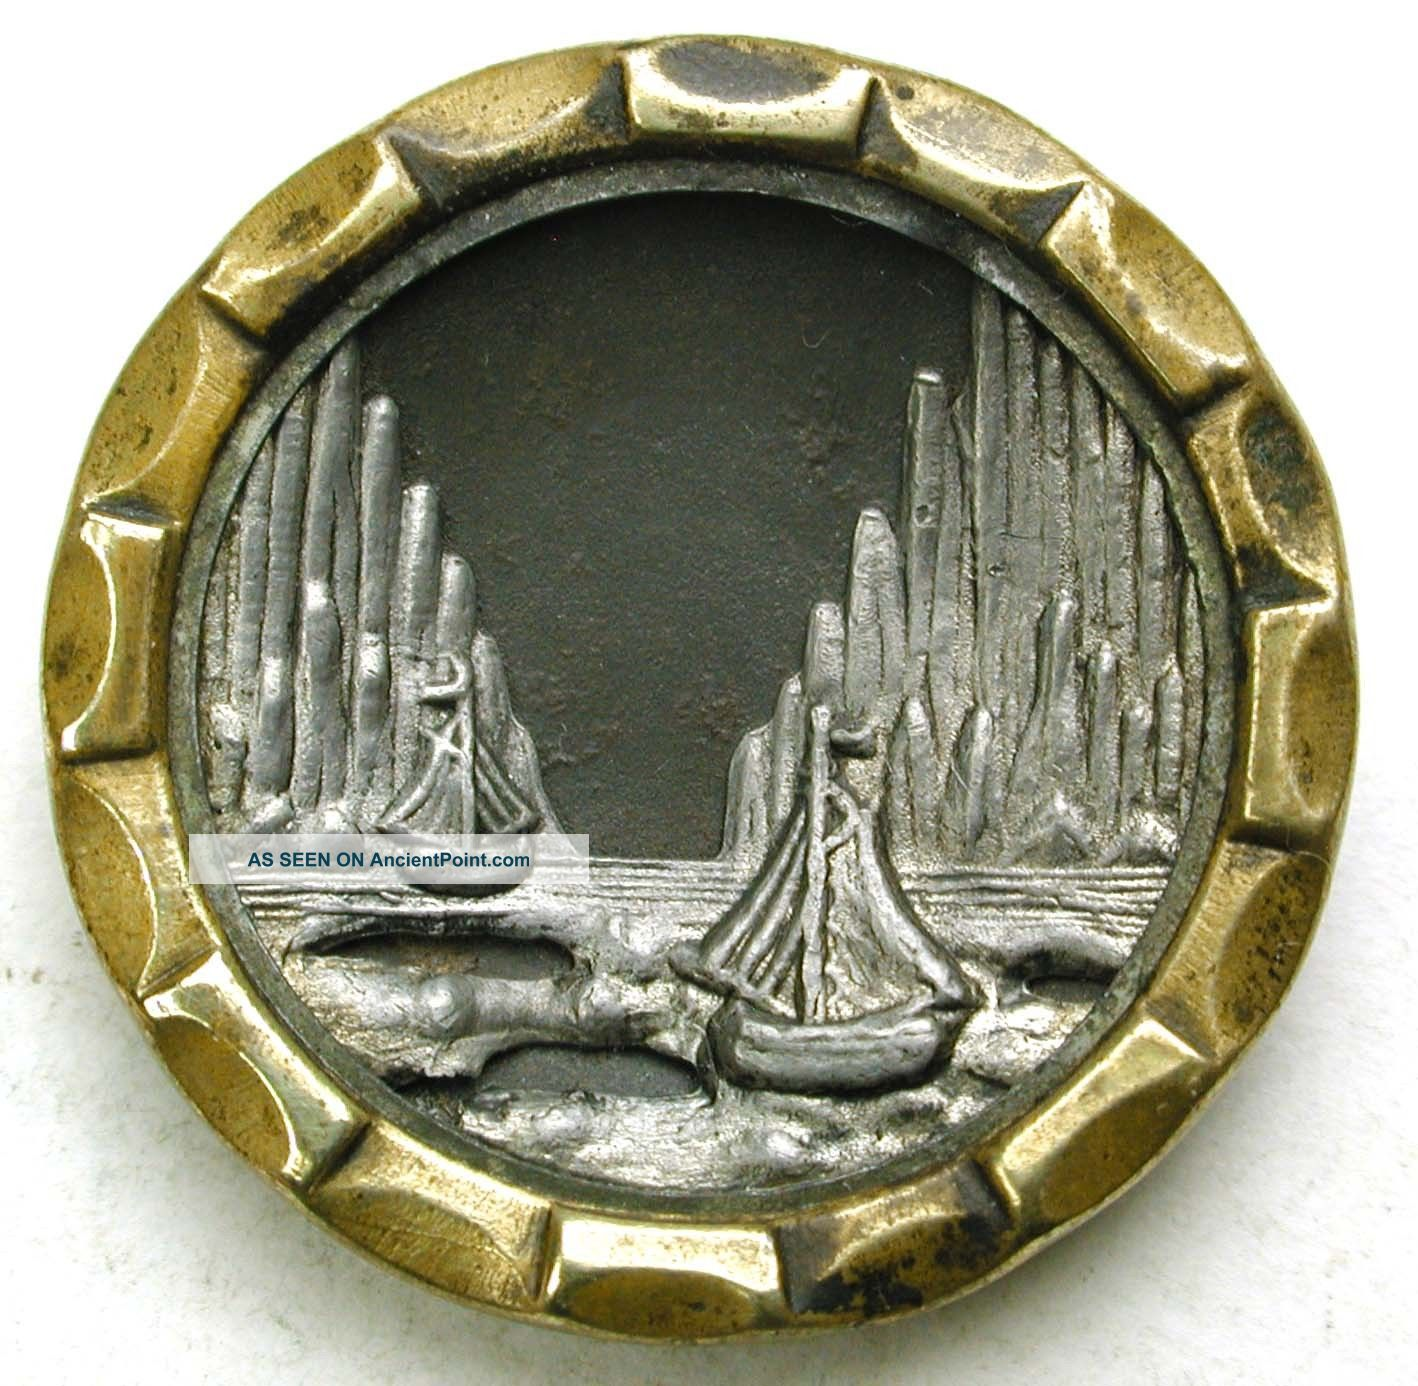 Antique Brass Button Sailing Ships In Icy Fjord Scene - 1 & 1/16